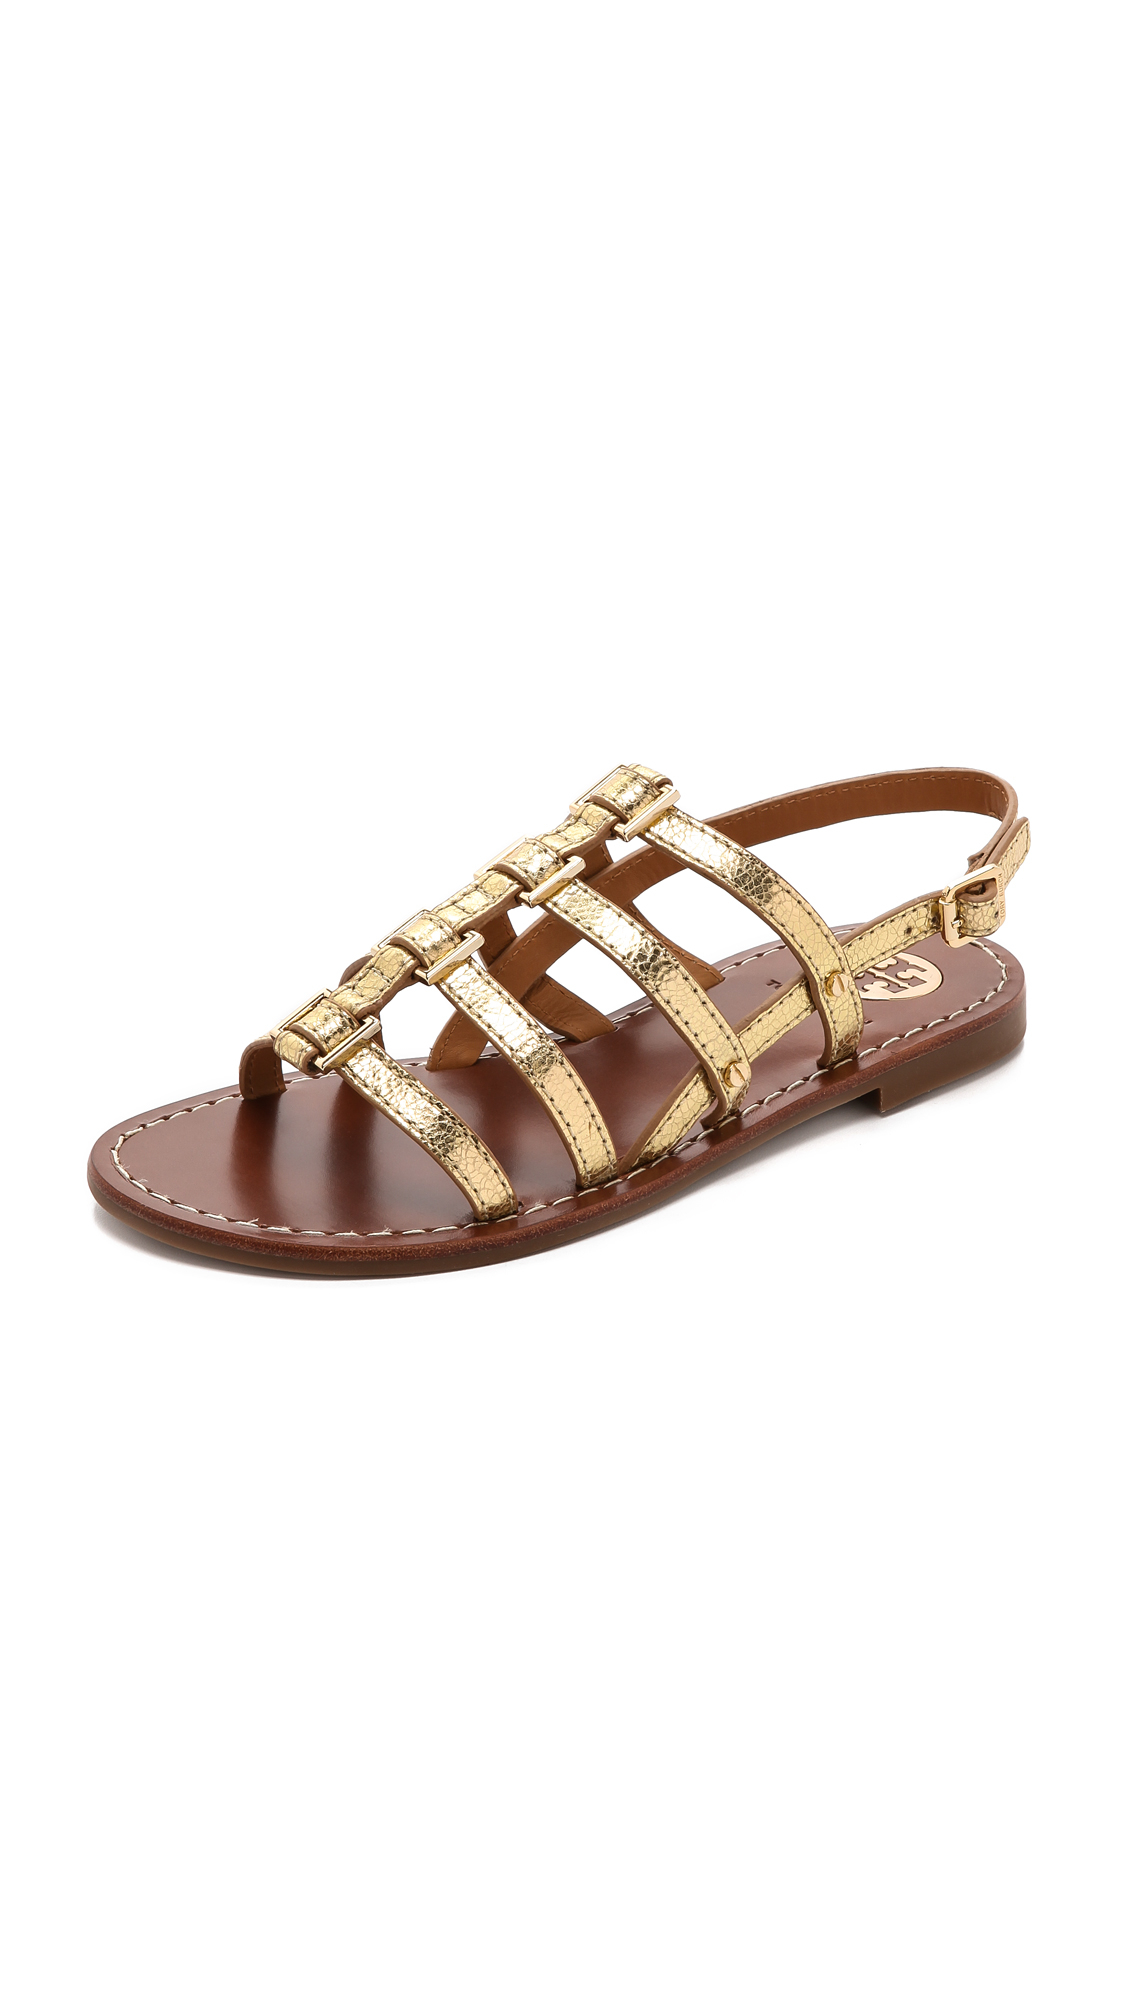 4128679bd Tory Burch Reggie Flat Sandals Gold in Gold